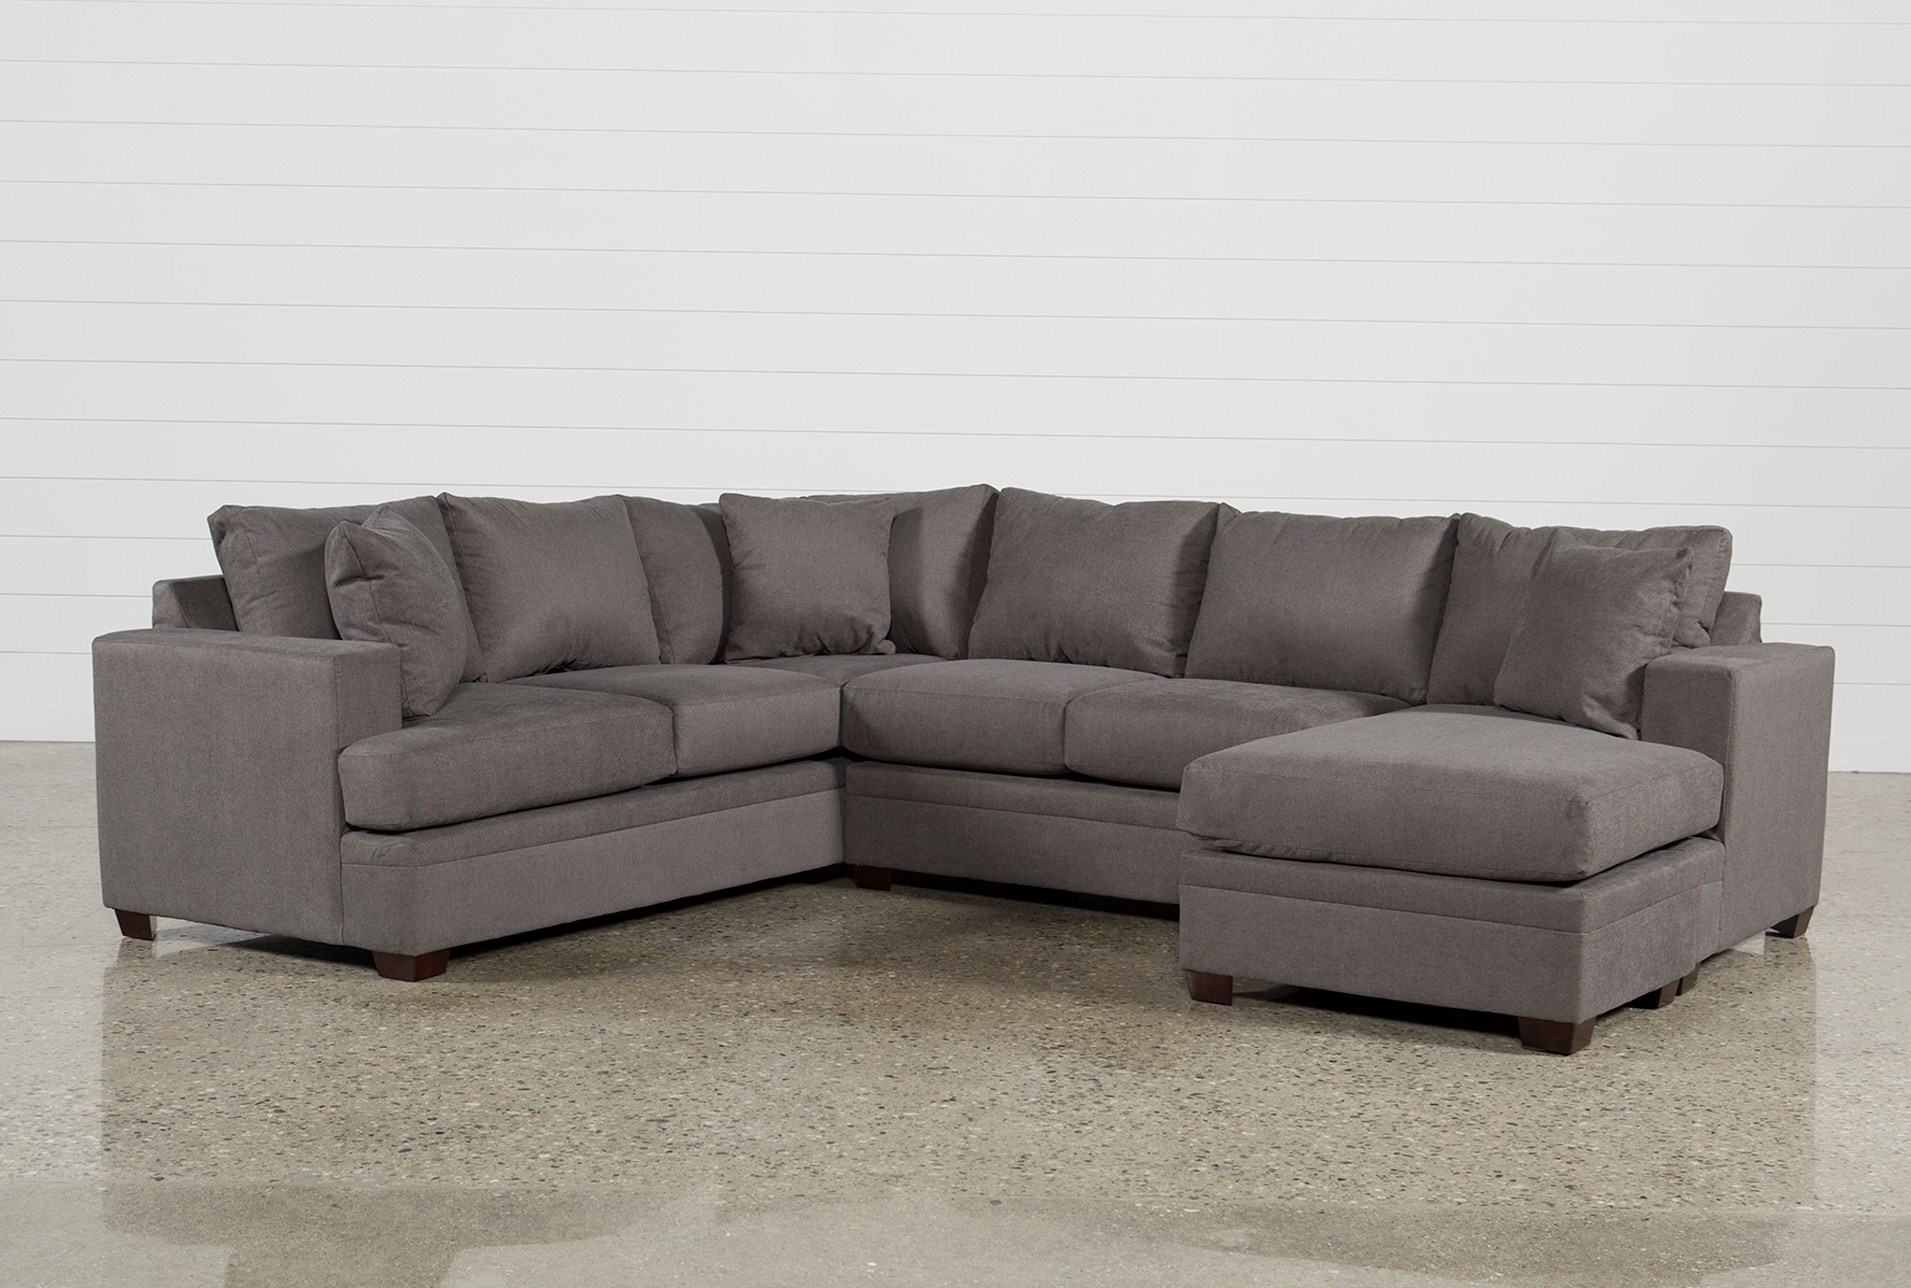 2 Piece Sectional Sofa With Chaise 2 Piece Sectional Sofa Chaise ...